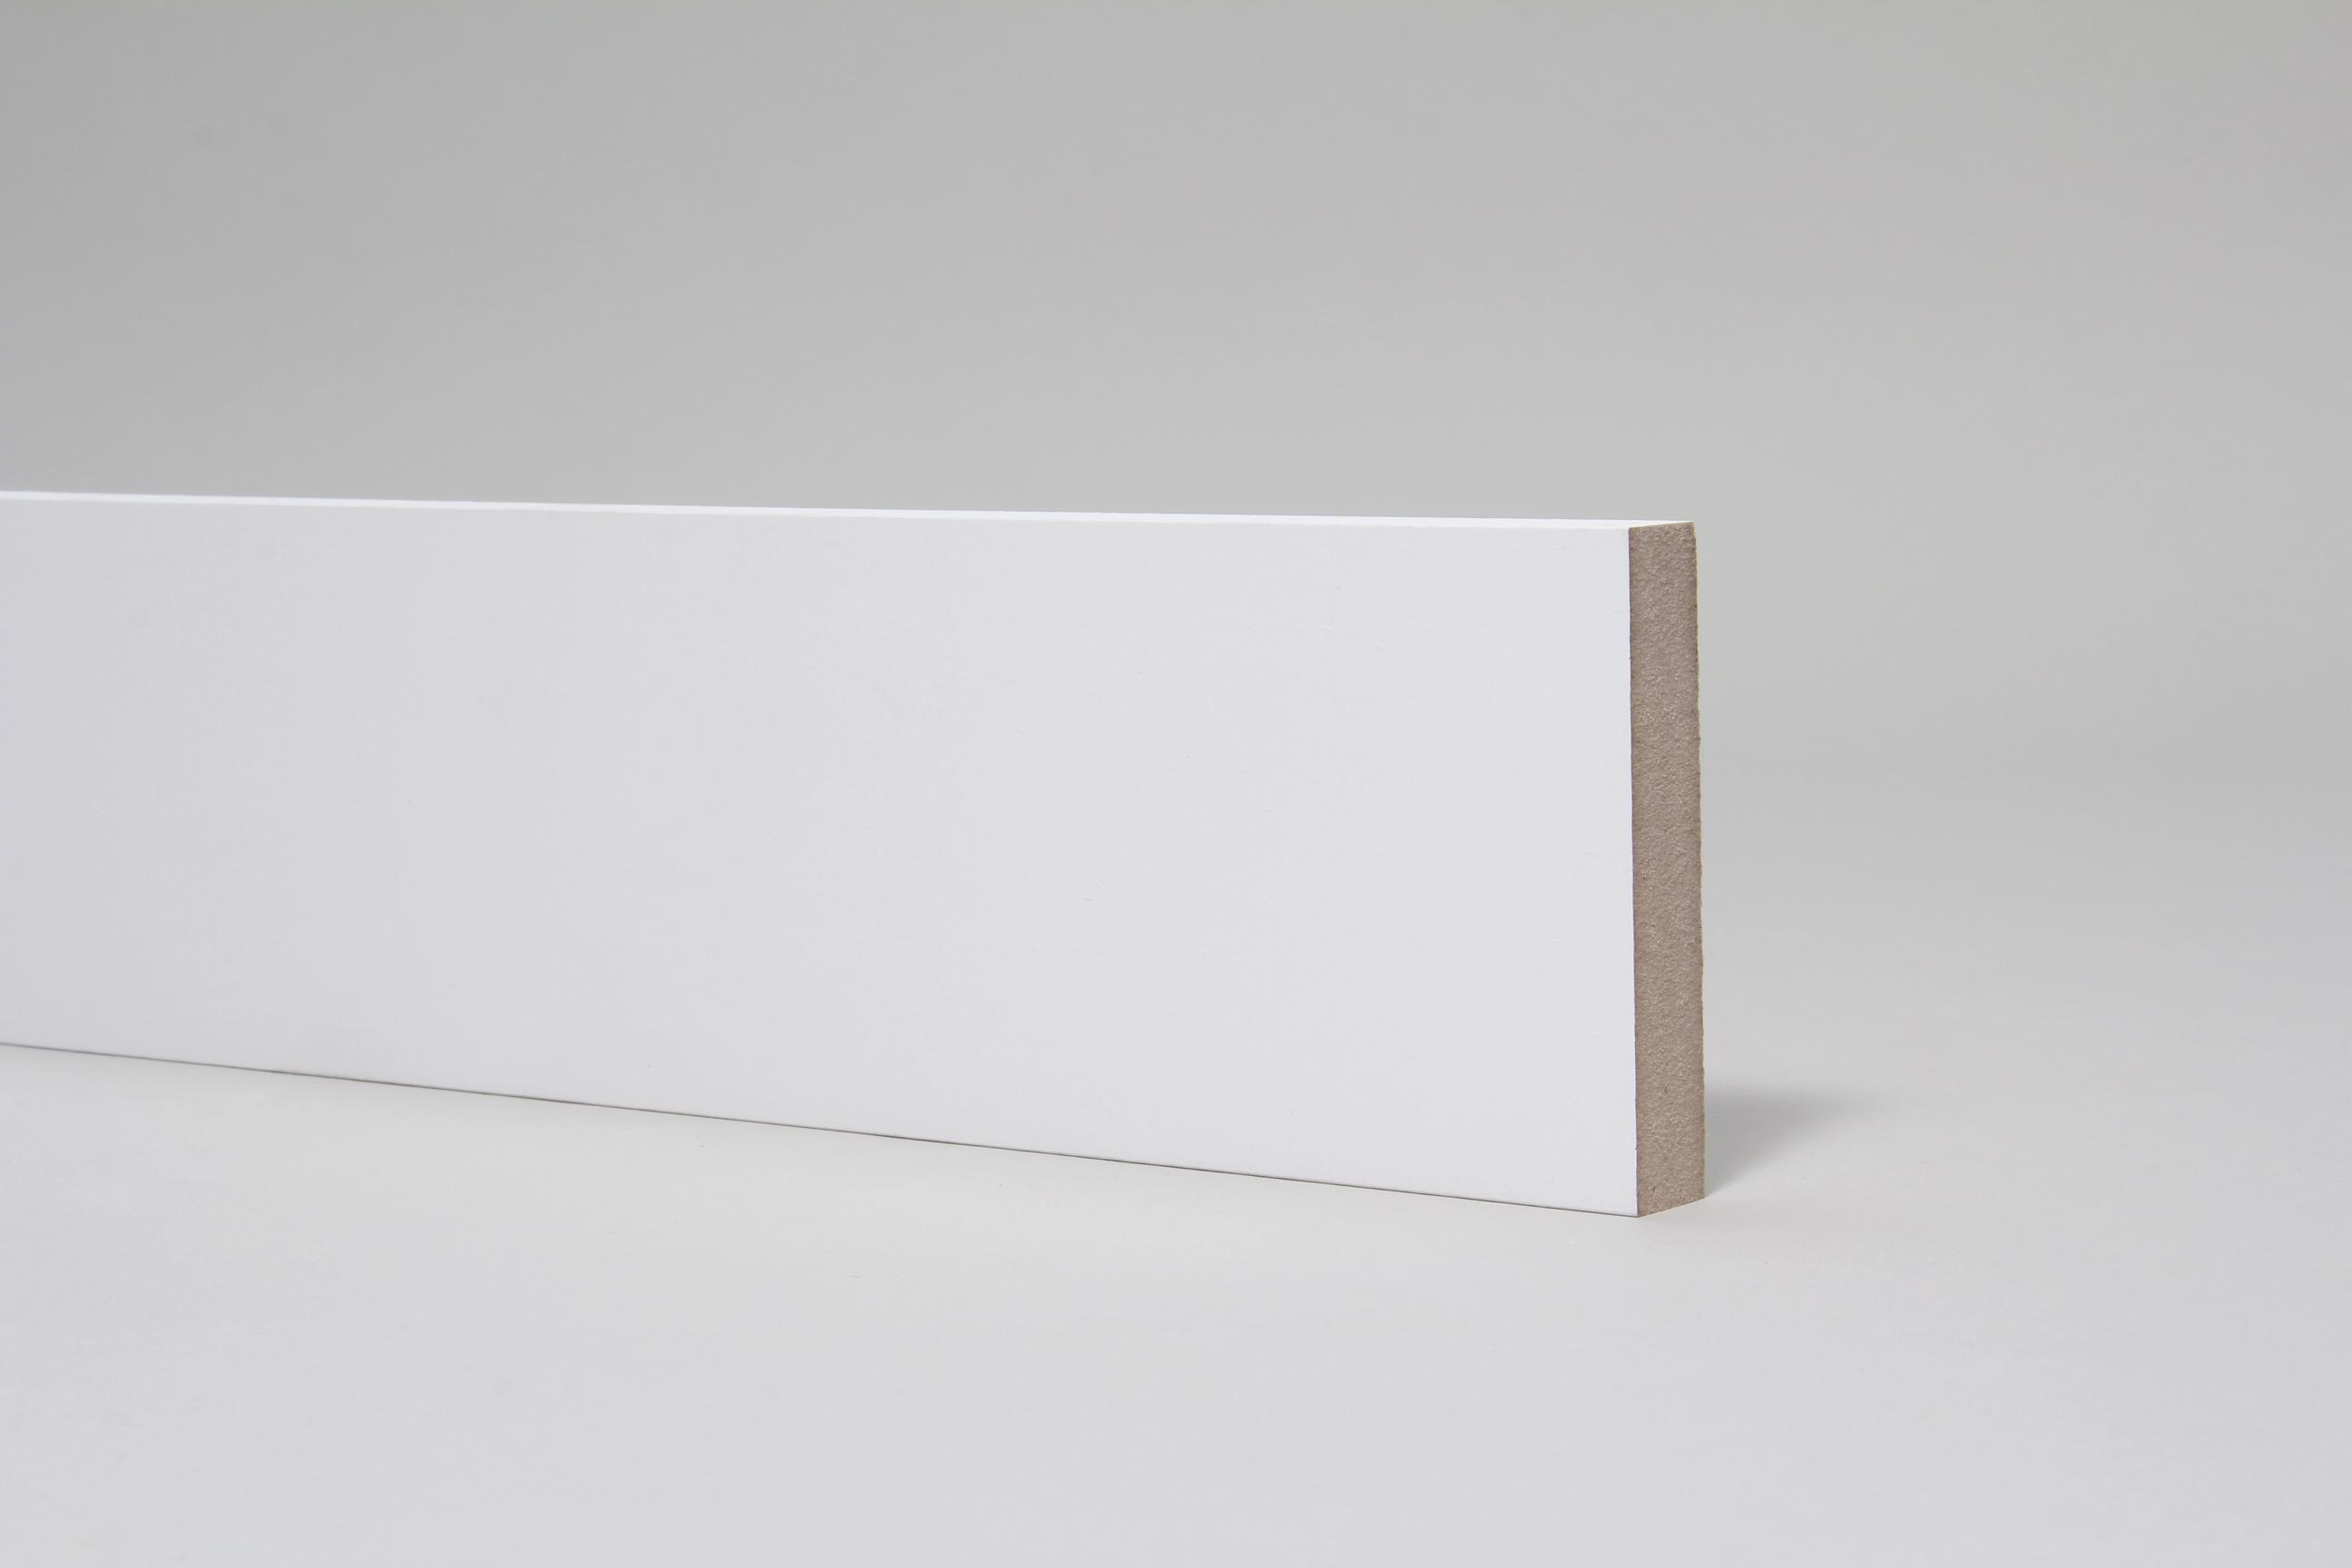 Plain Square Edge 18mm x 94mm x 4.4 Mtr Primed